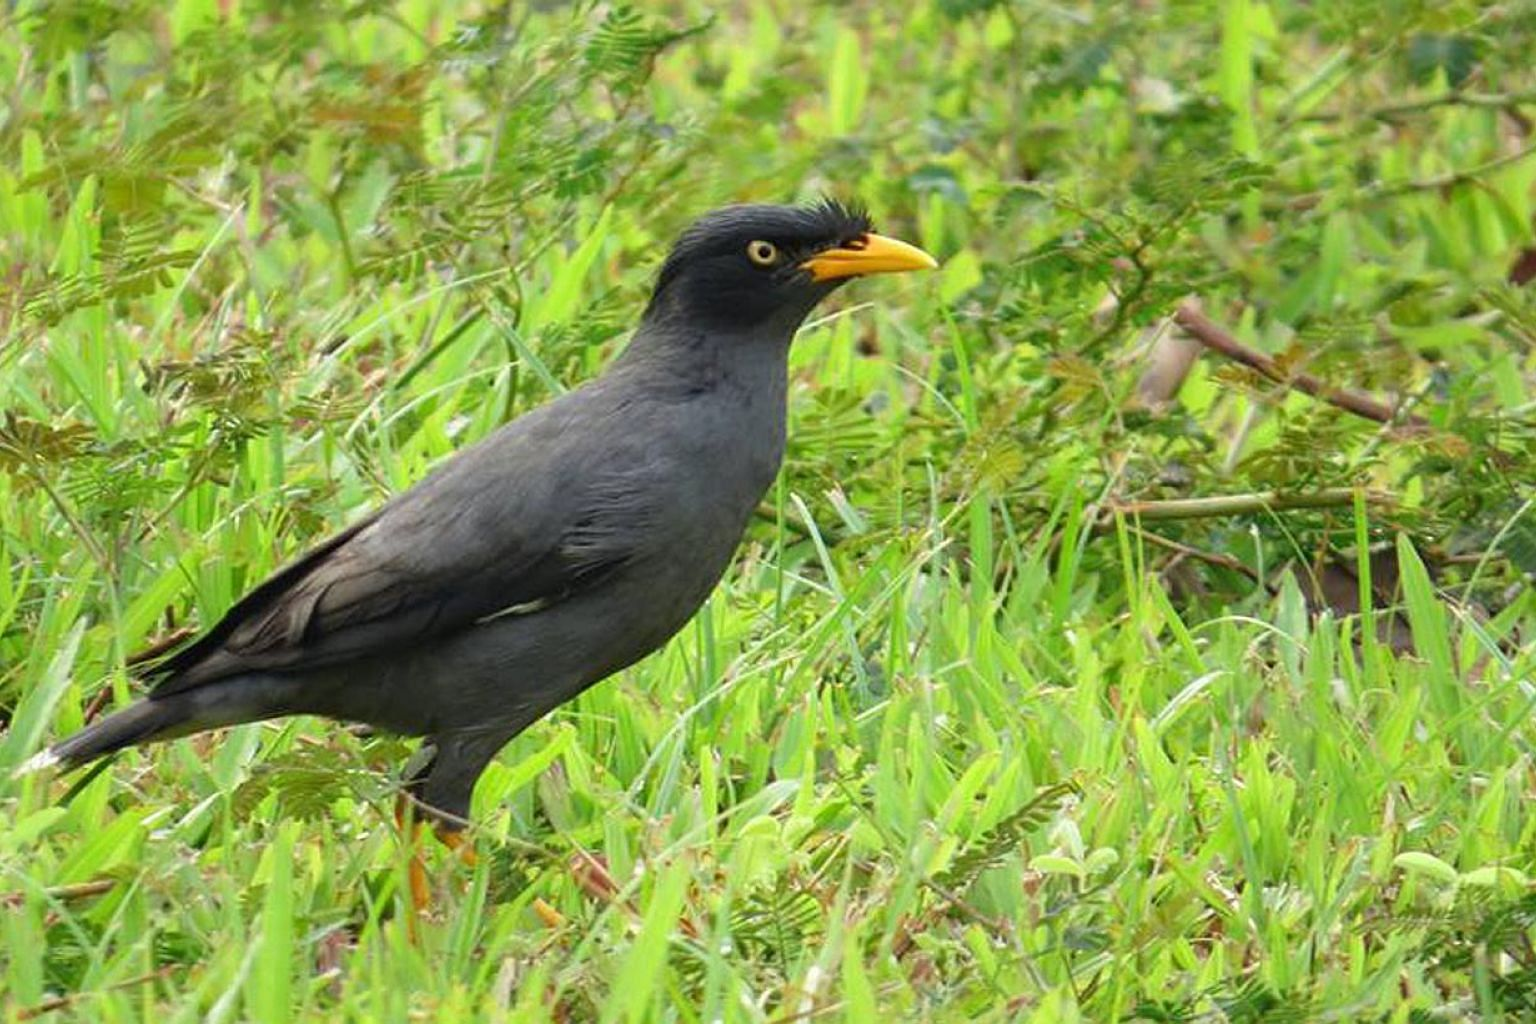 What does it mean to our native ecosystems that the Javan mynah (above) has displaced the common mynah? The answer may simply be fewer common mynahs. Or perhaps there are more serious effects which may be direct or indirect - and apparent only in the